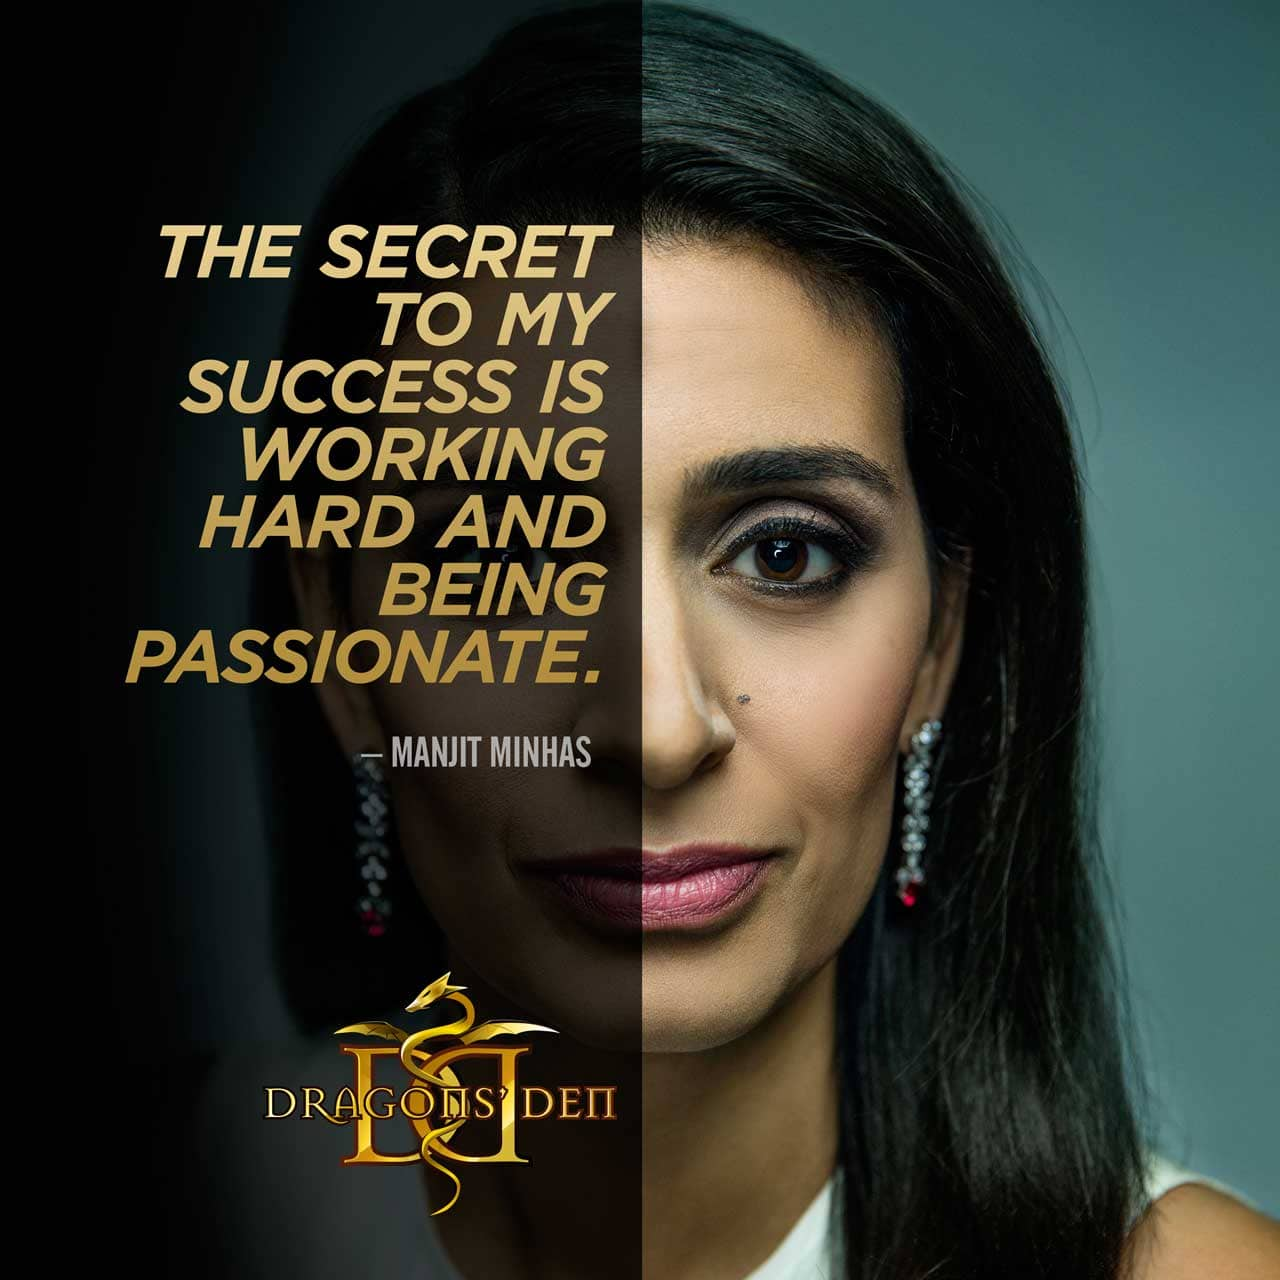 The secret to my success is working hard and being passionate. Said by Manjit Minhas